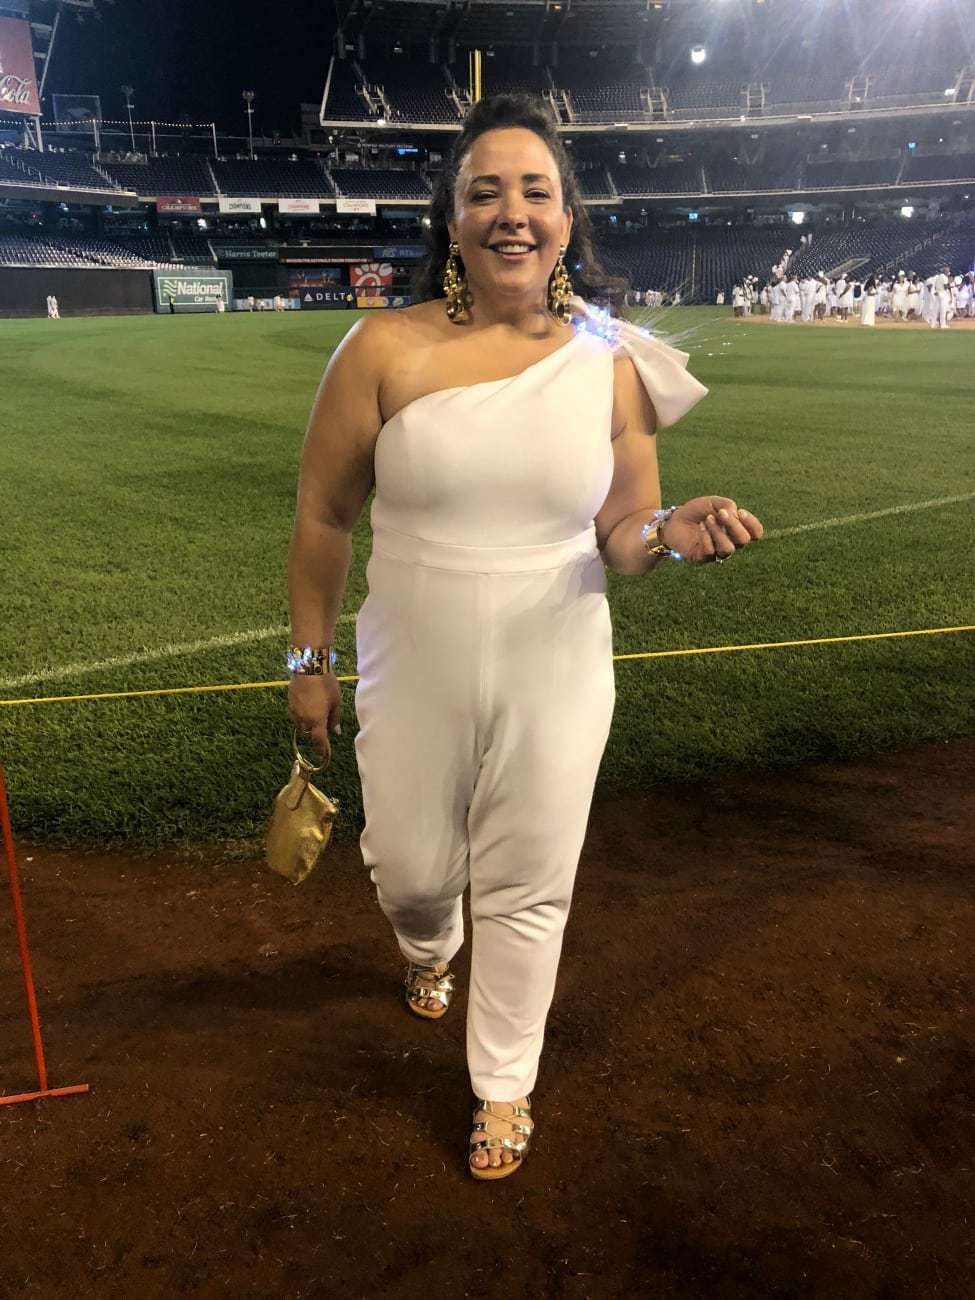 diner en blanc 2018 what I wore Jump suit